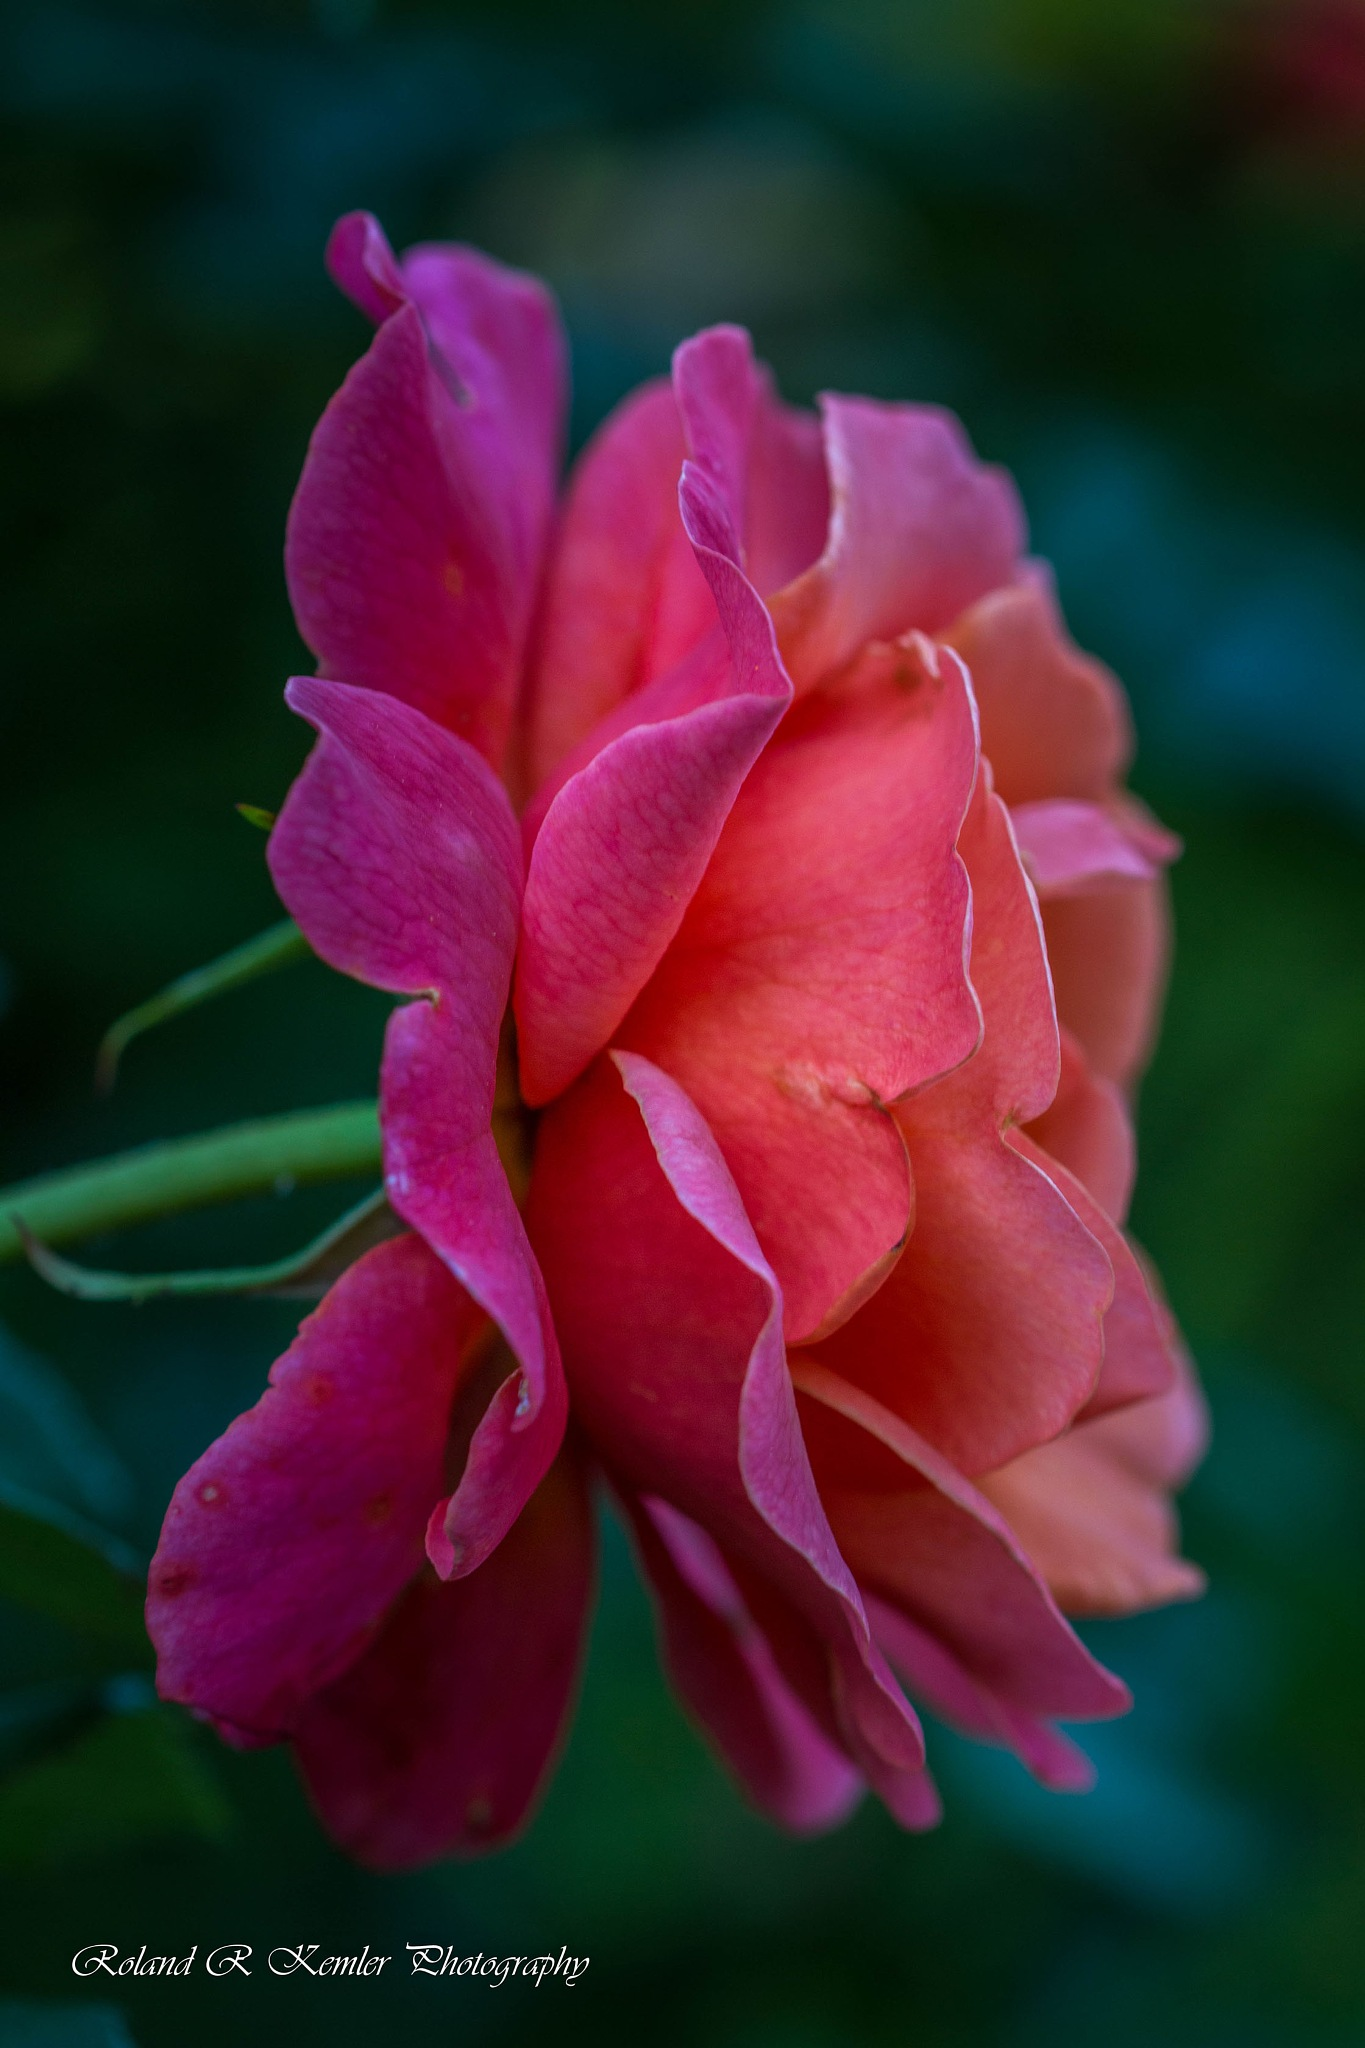 The Rose by Roland R Kemler